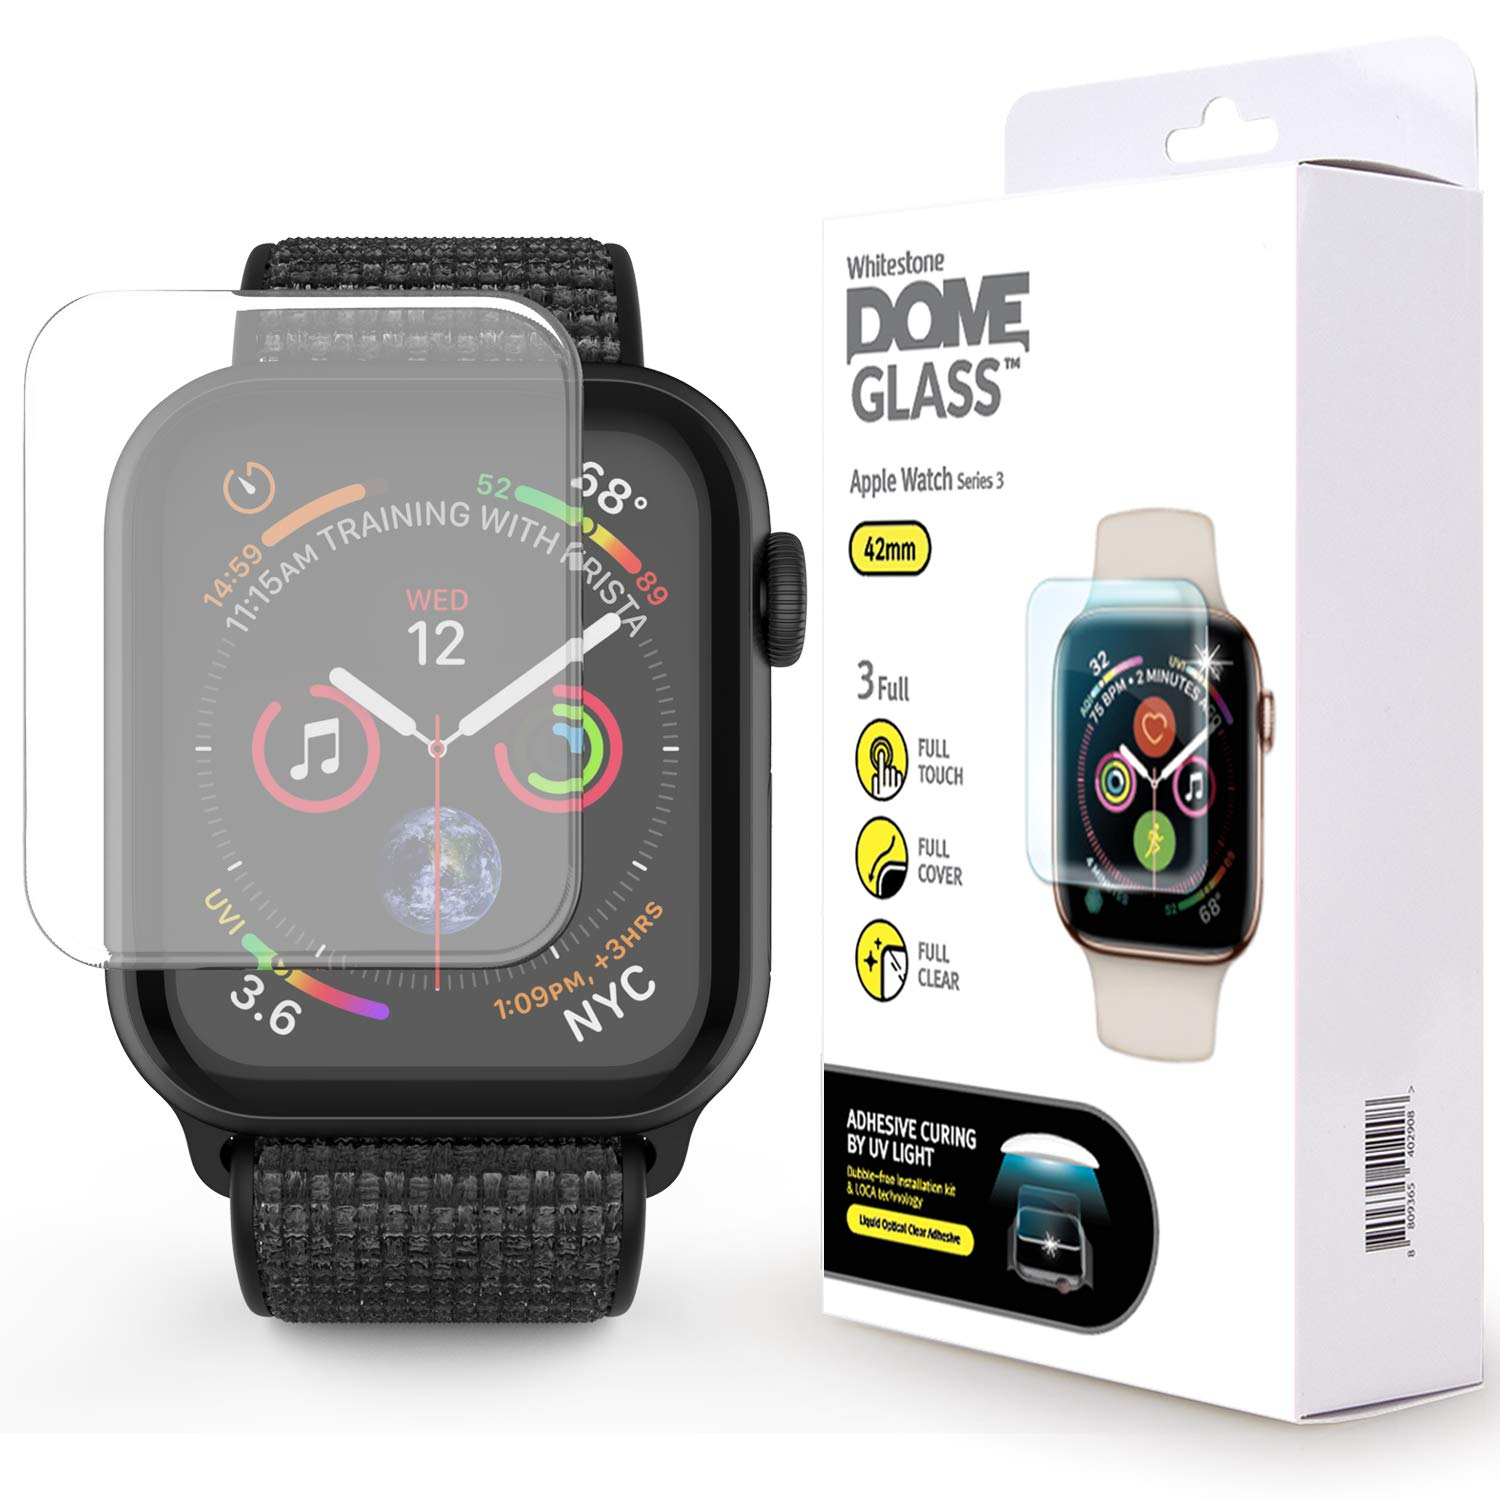 Apple Watch 42mm Screen Protector, [DOME GLASS] Liquid Adhesive for Full Coverage Tempered Glass [NO UV Light Included] and Protection by Whitestone for The Apple Watch 3 - Replacement Kit ONLY by Dome Glass